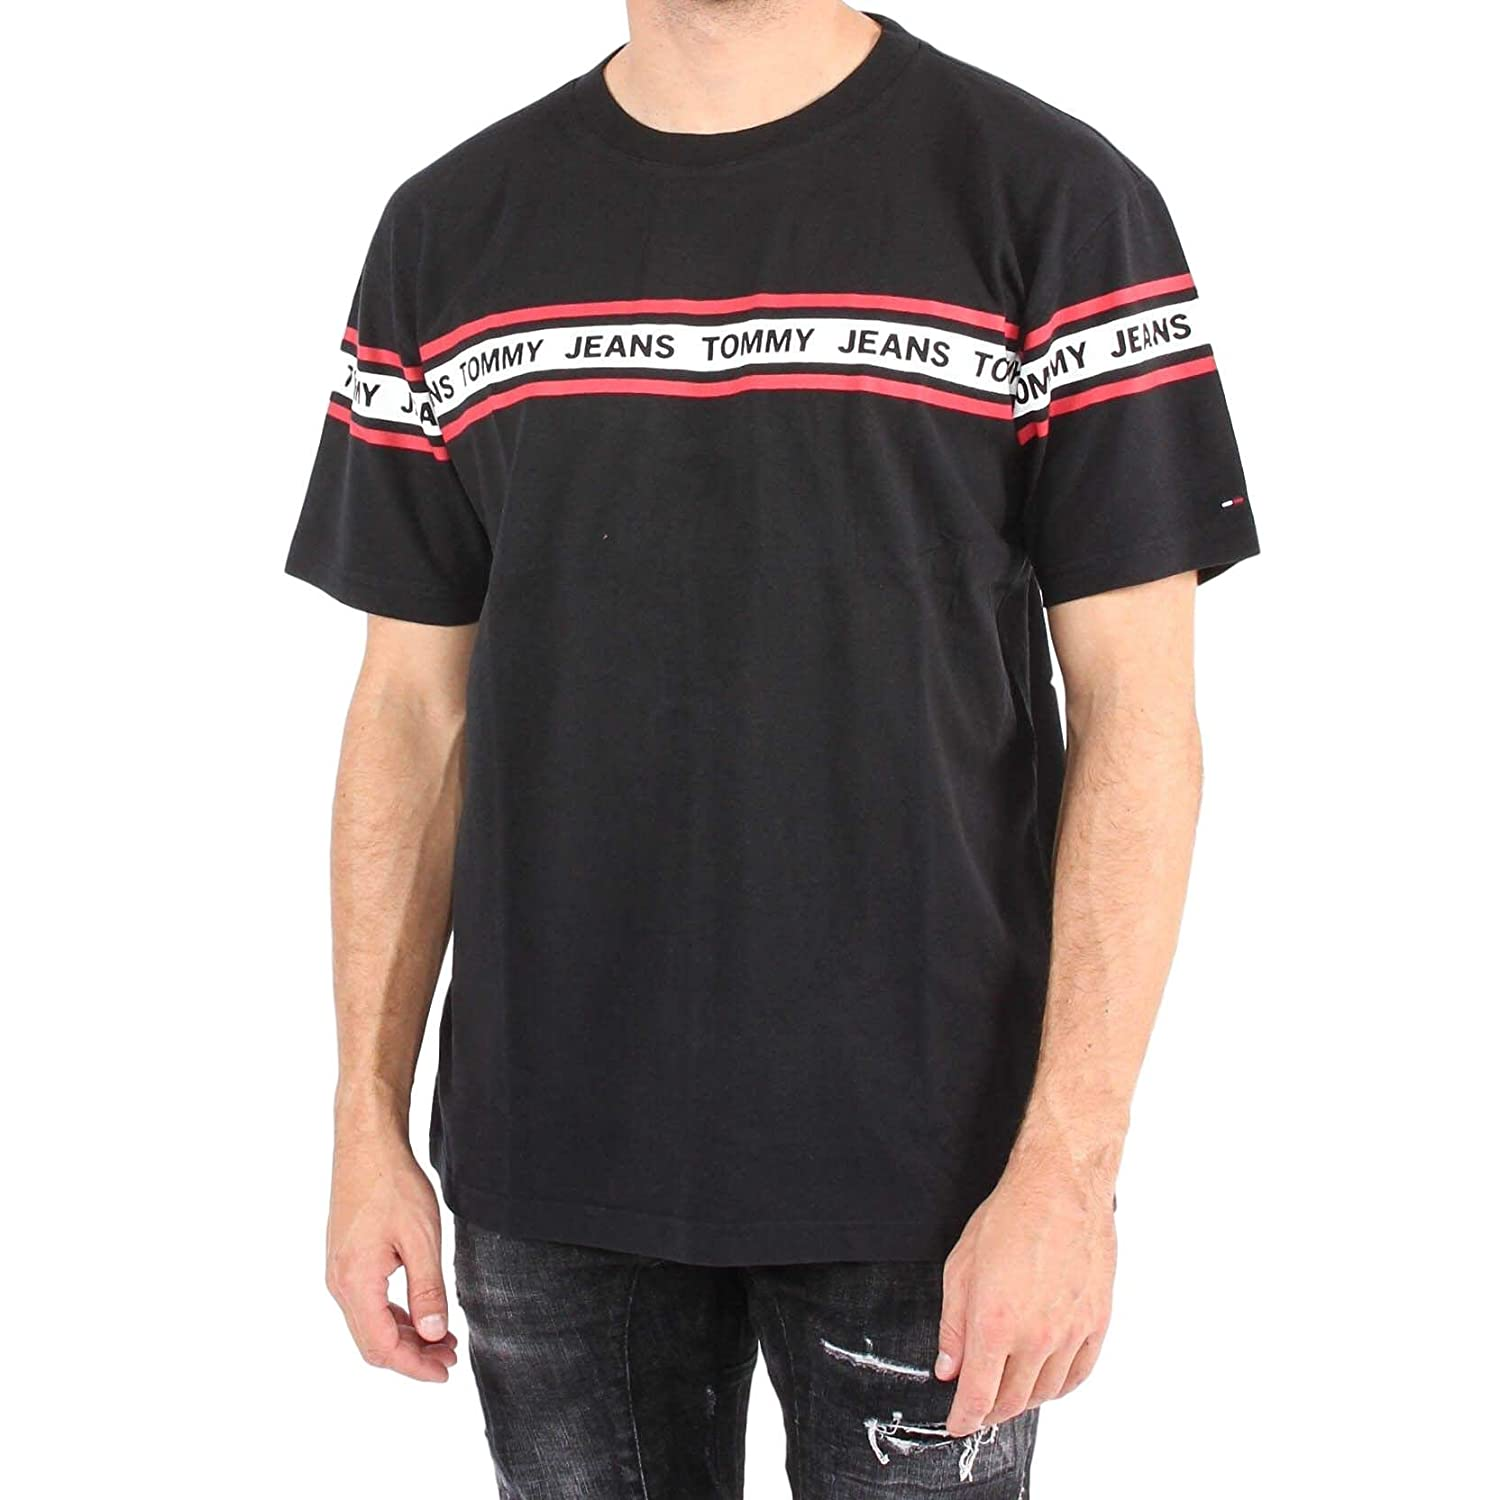 the best attitude 70d4c b7975 T-Shirt Tommy Jeans DM0DM05559 Uomo Hilfiger Denim Nero ...